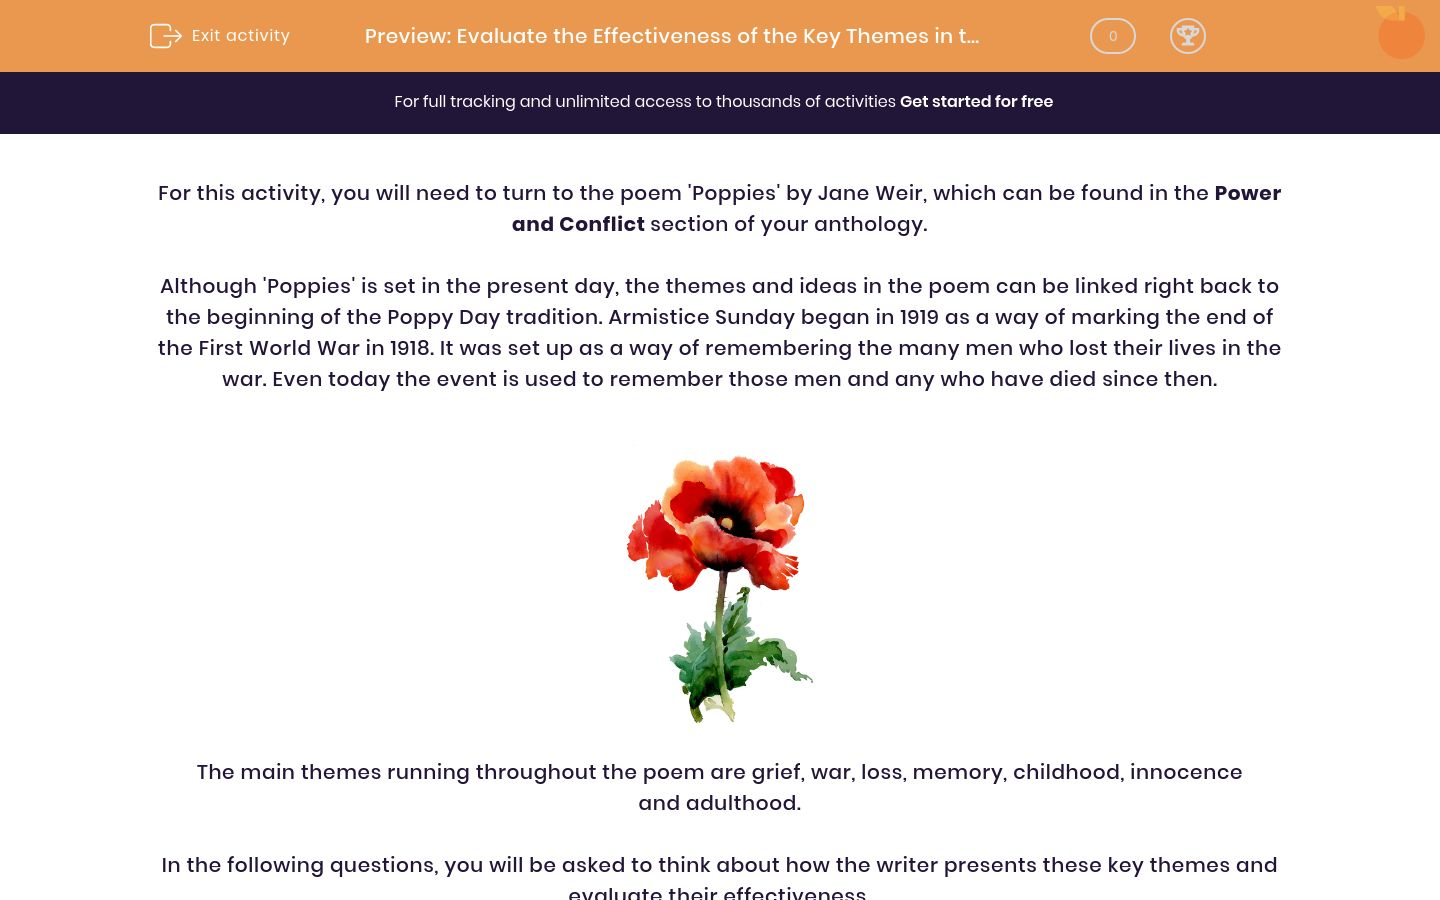 'Evaluate the Effectiveness of the Key Themes in the Poem 'Poppies' by Jane Weir' worksheet